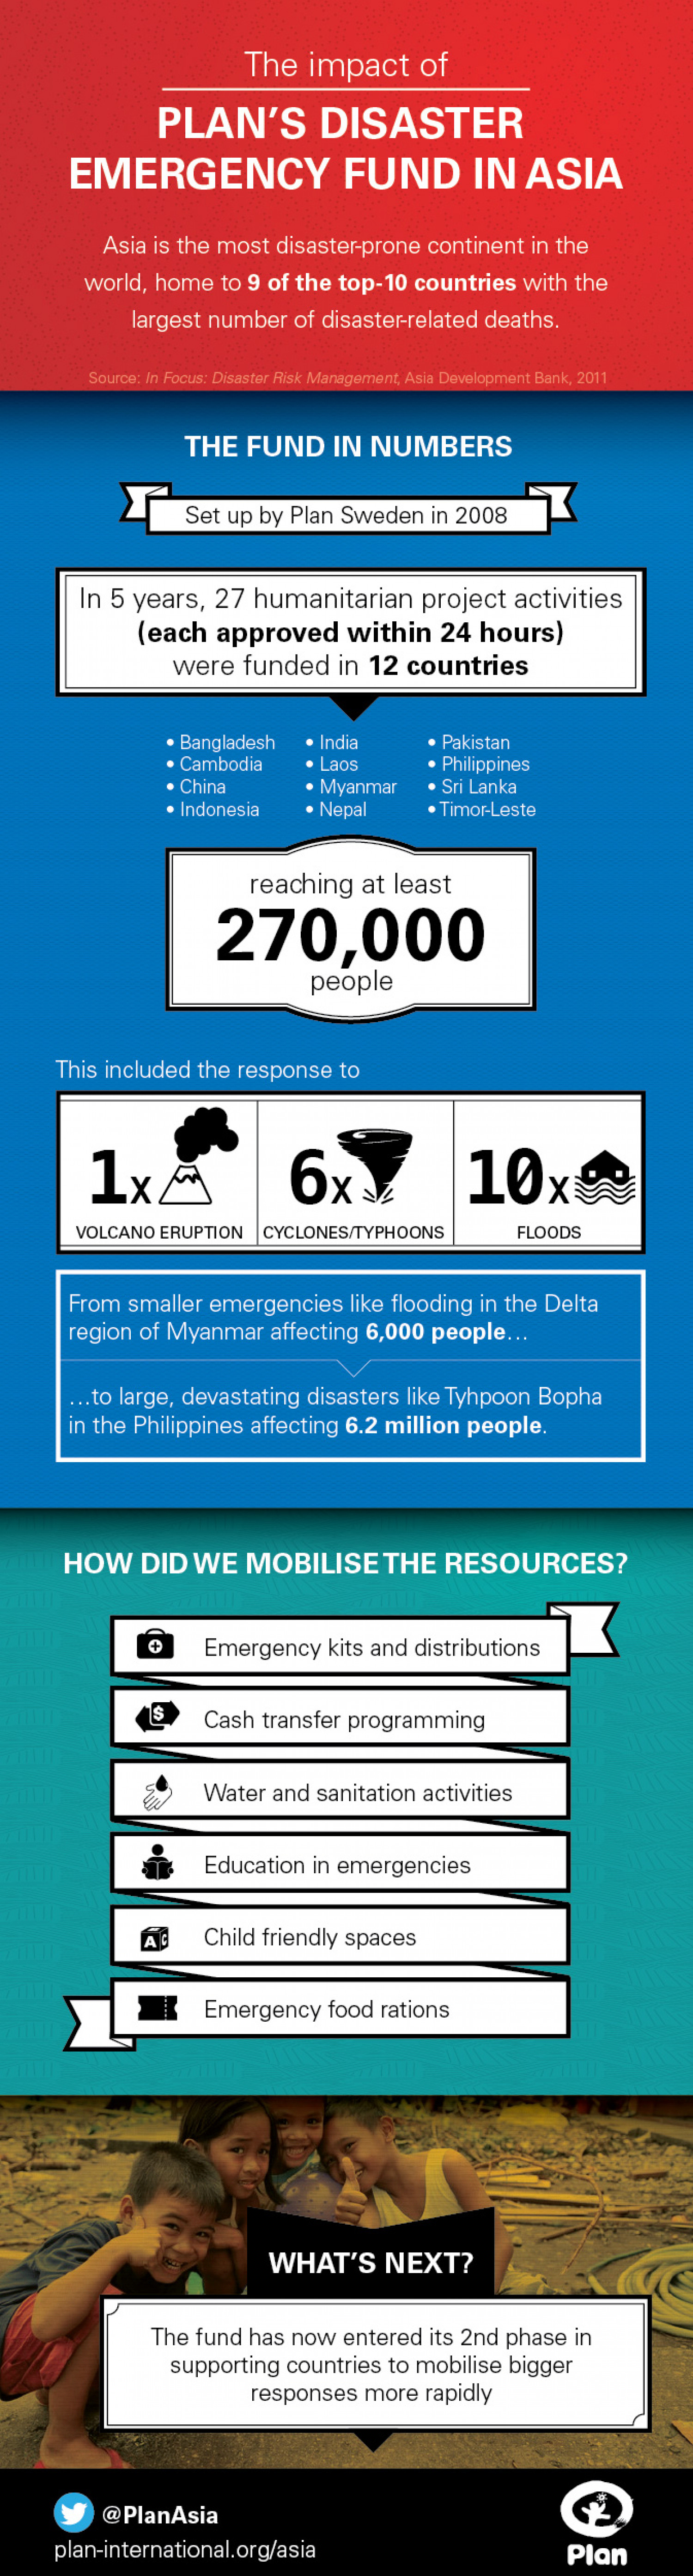 Plan's Disaster Emergency Fund In Asia Infographic